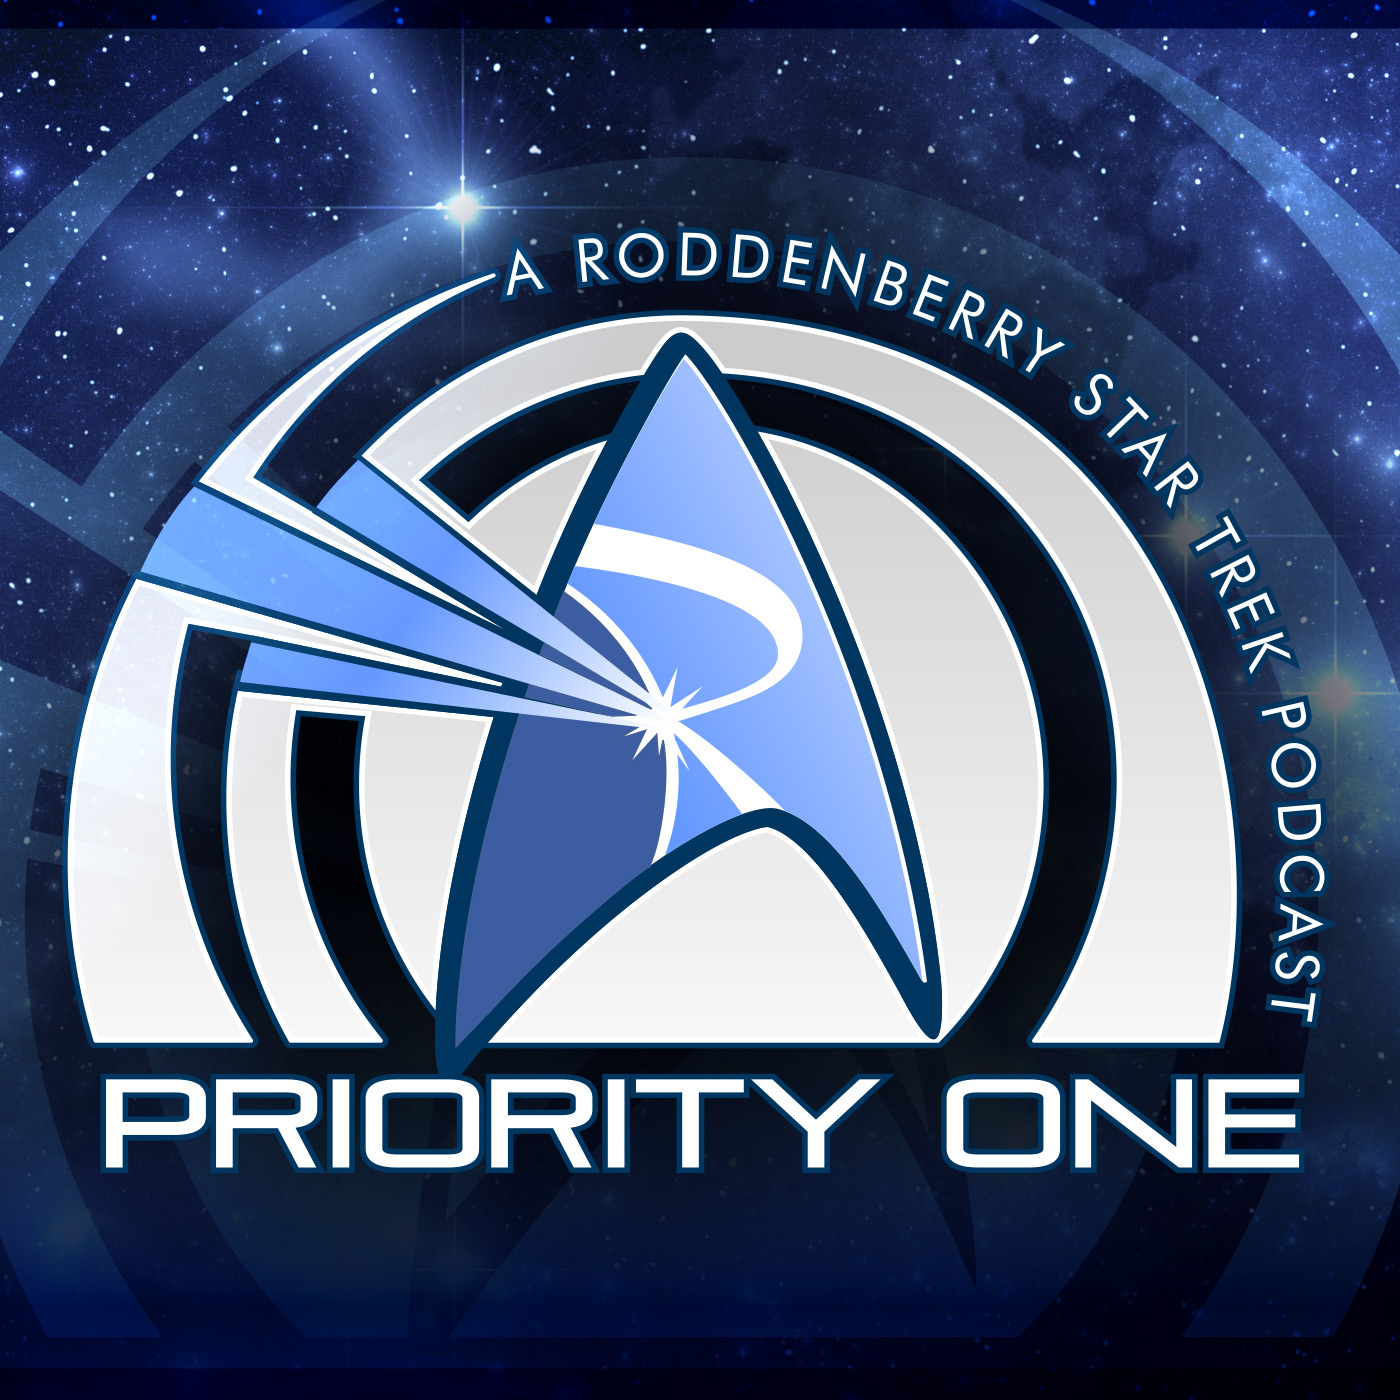 Artwork for 403 - Goodnight, Foundry | Priority One: A Roddenberry Star Trek Podcast